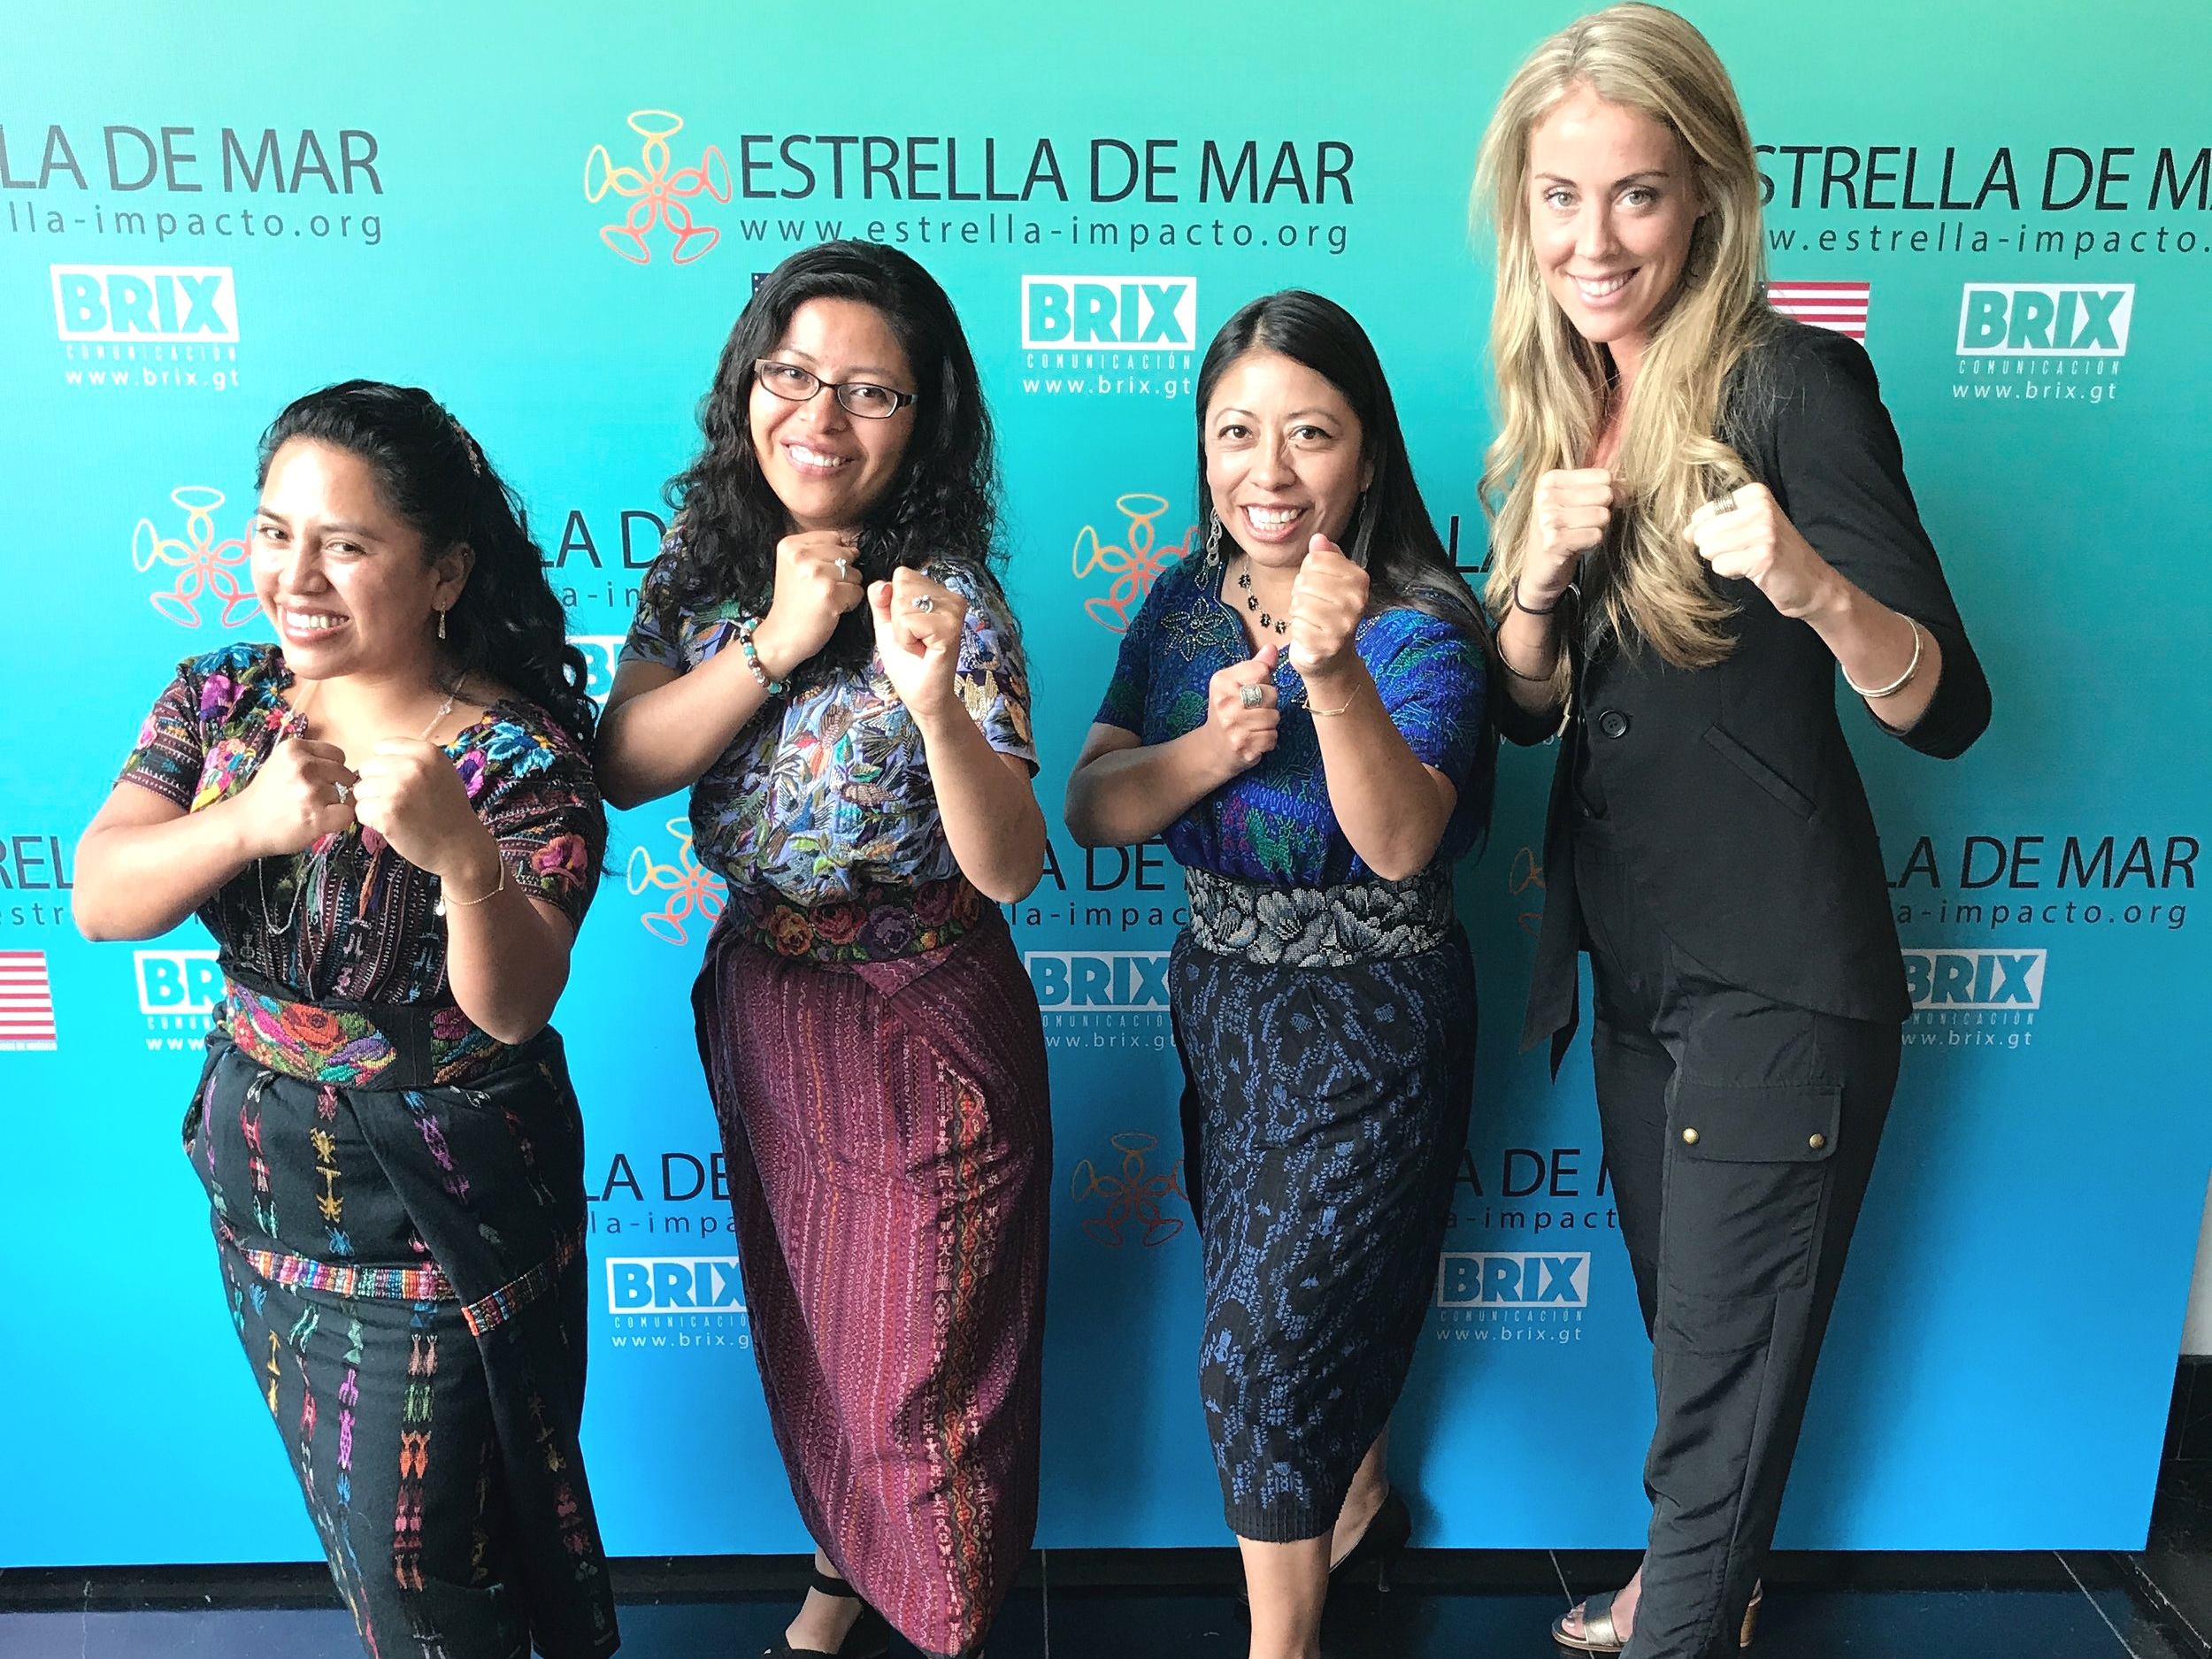 Panel speaker at Verlo Serlo Summit on Media Representation and Self-Esteem in Guatemala - joined by powerful team from  Maia Impact!